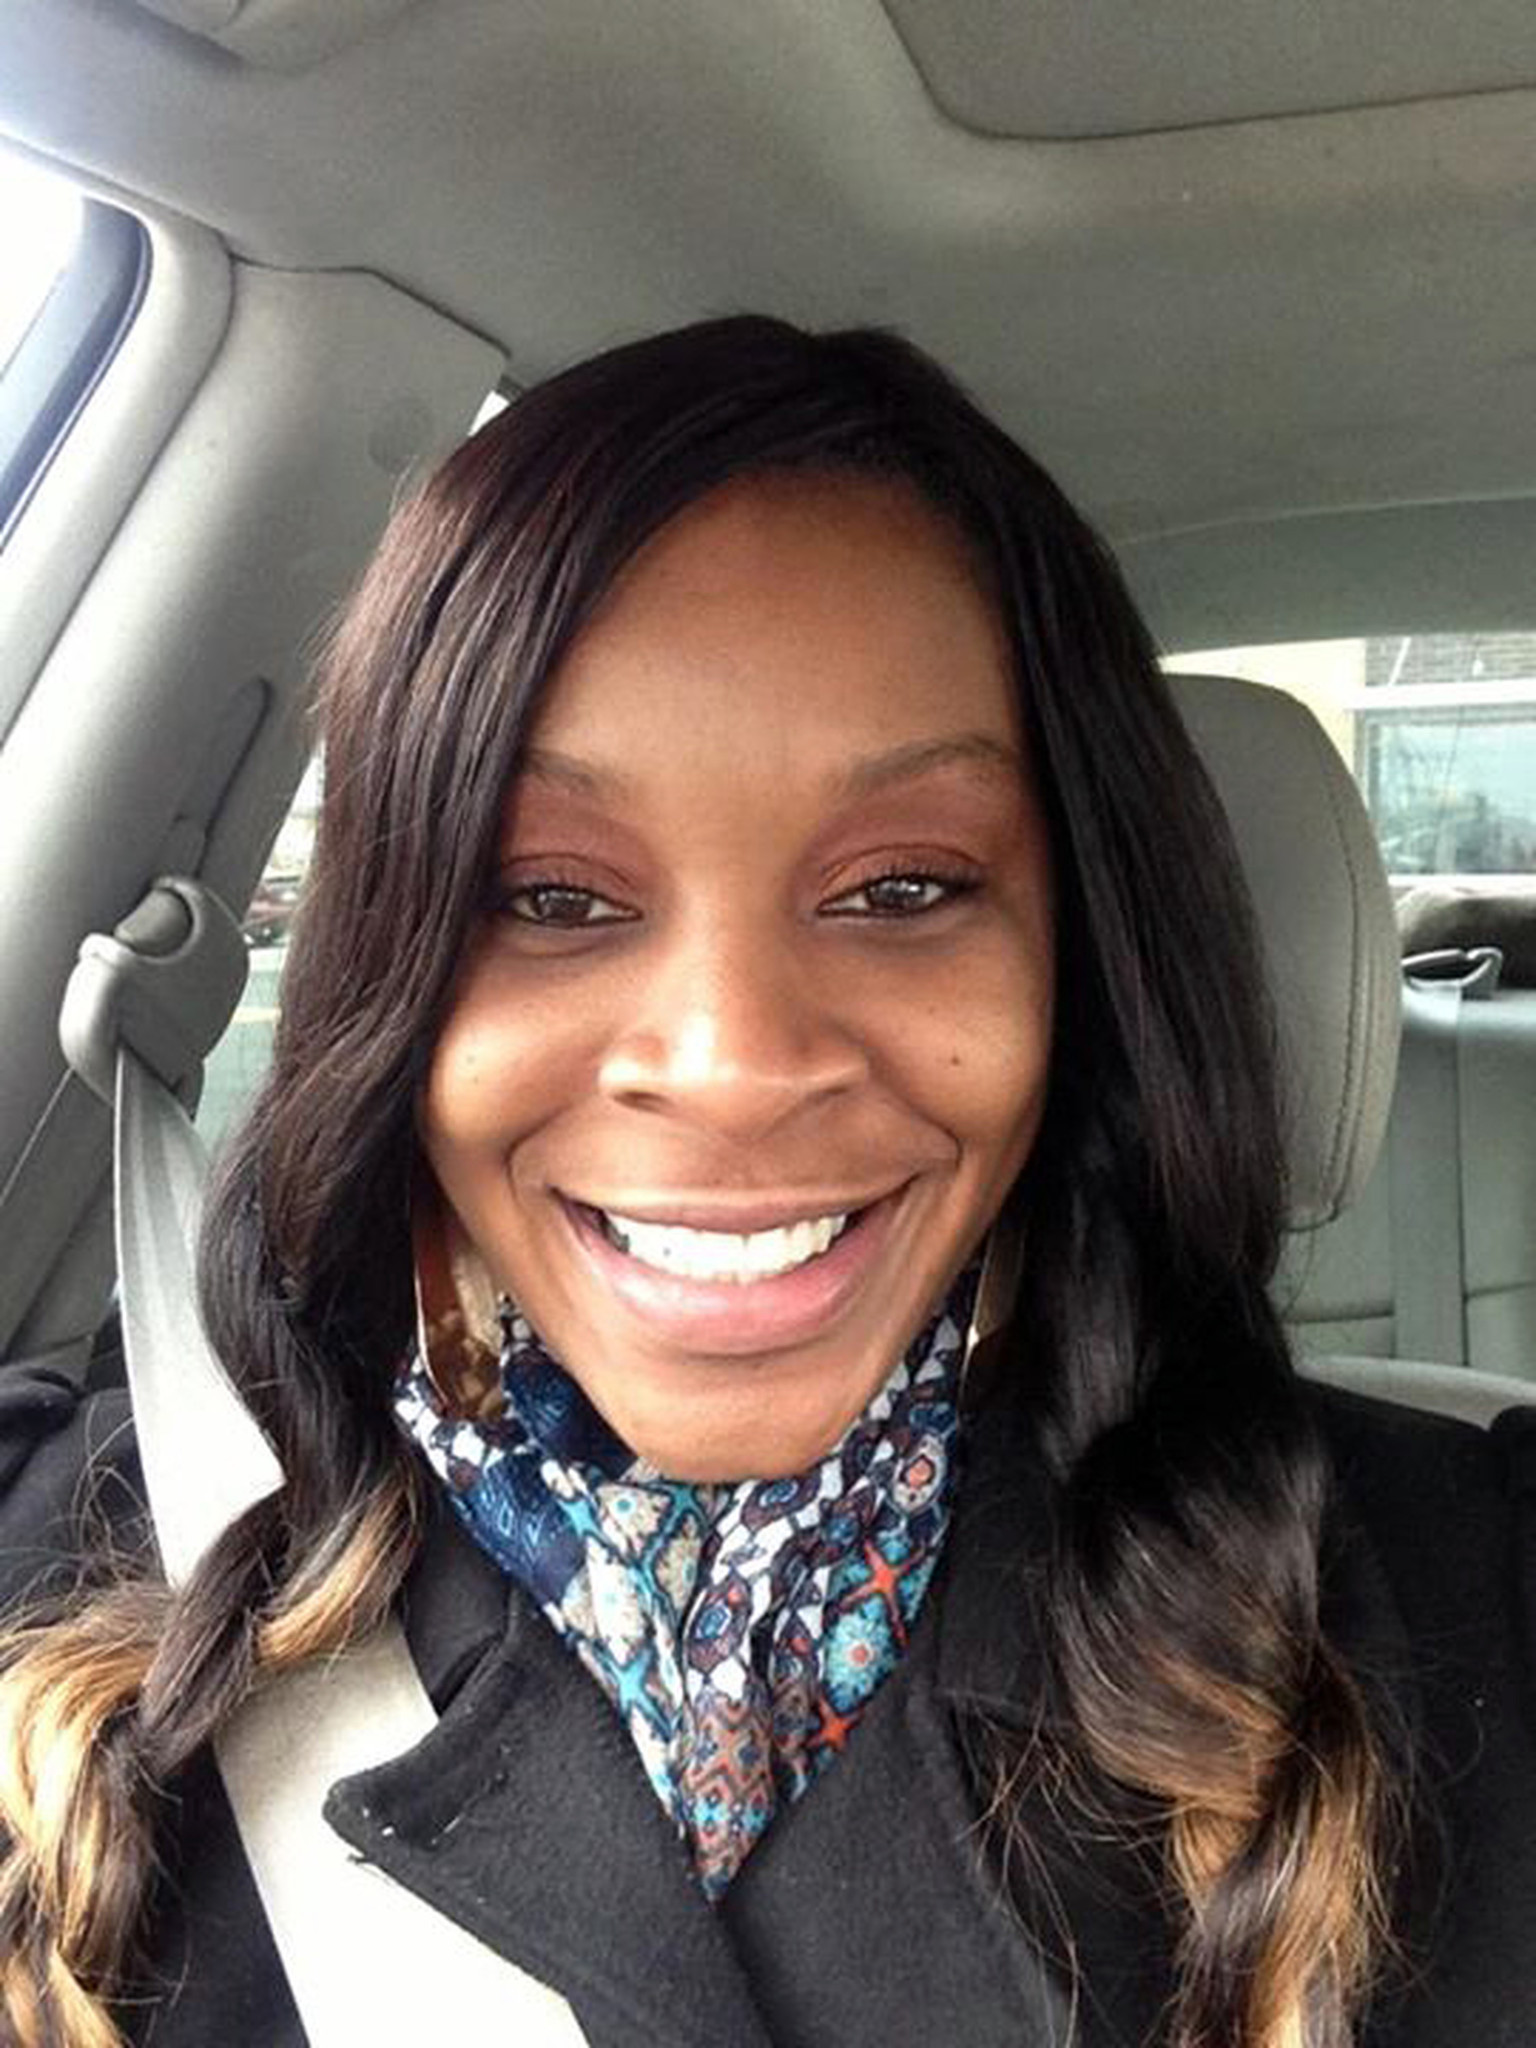 Sandra Bland Voicemail From Jail Expresses Disbelief